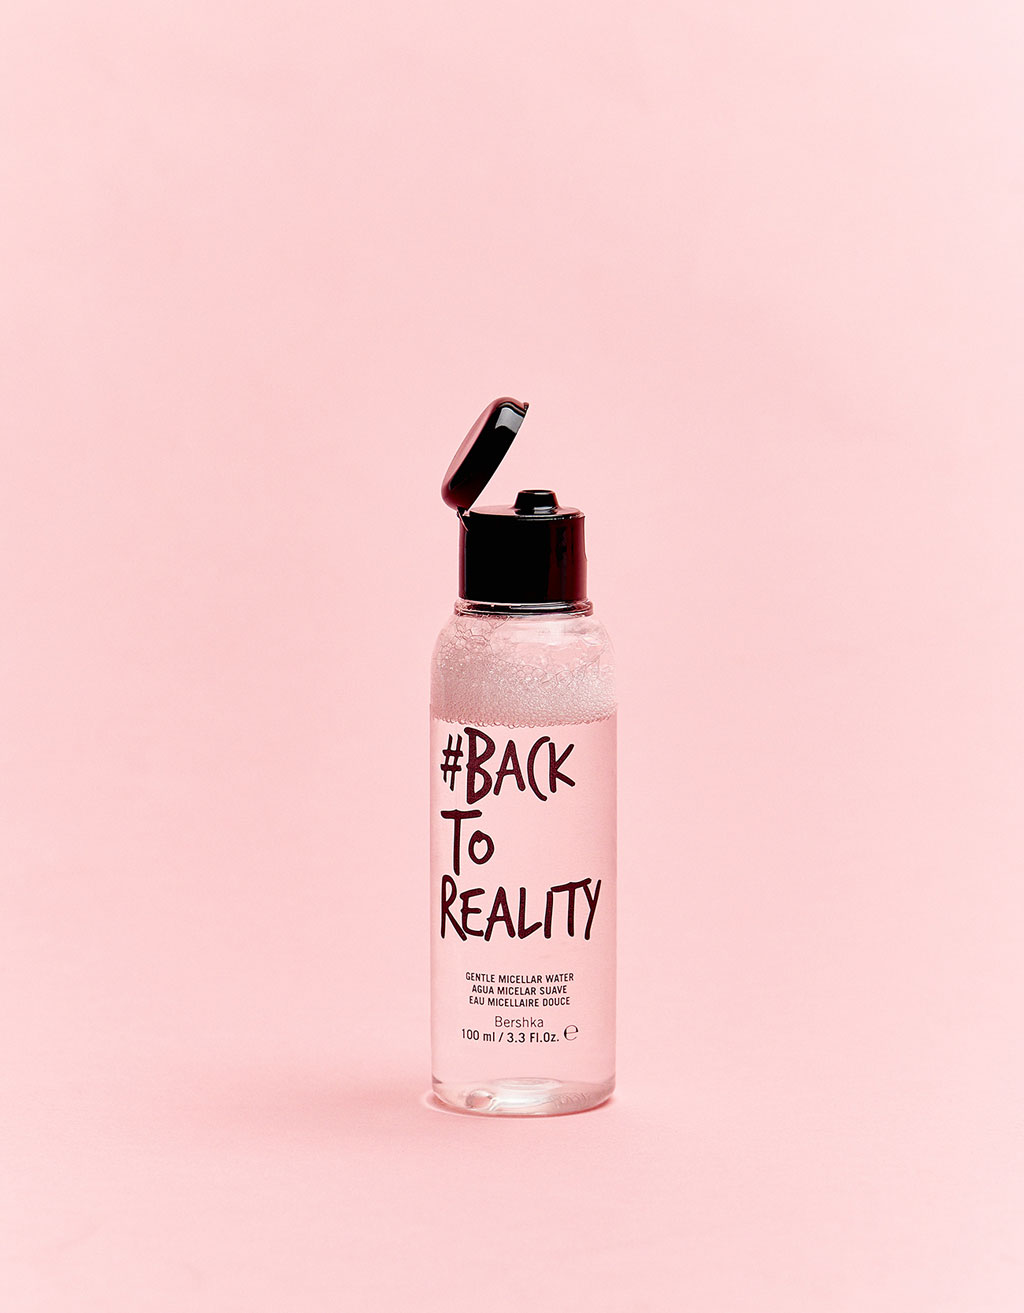 #backtoreality Soft micellar water